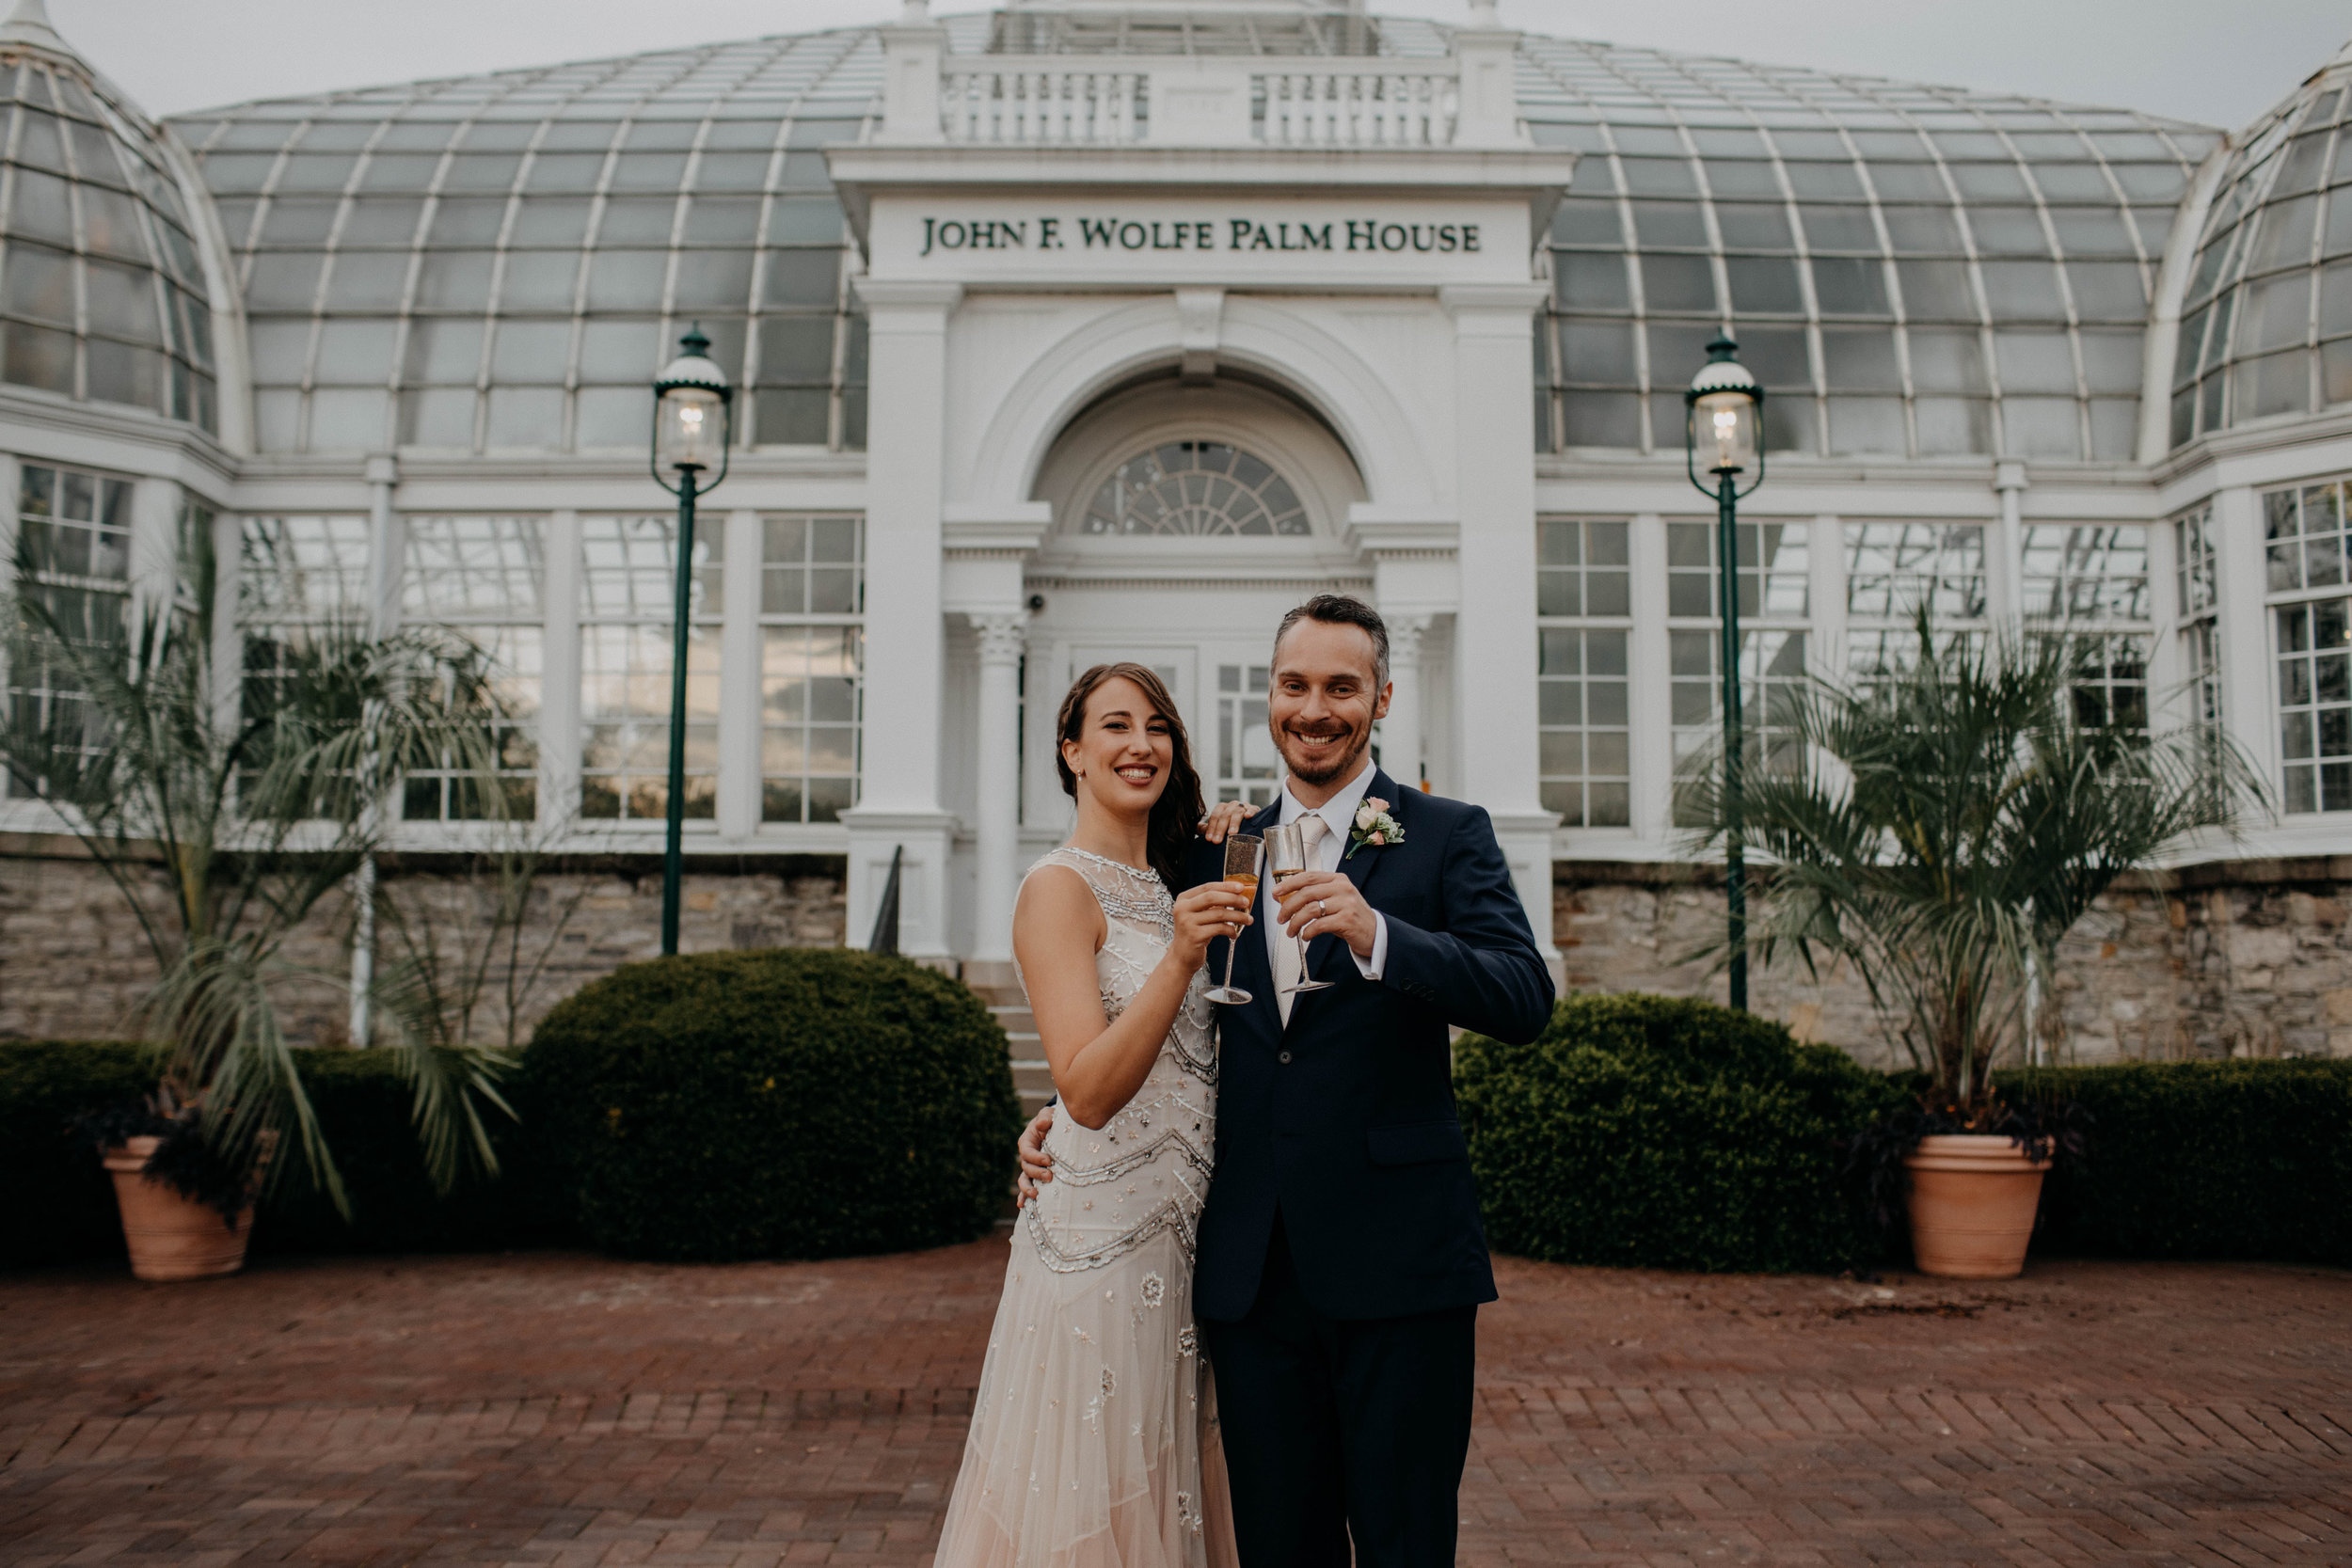 franklin park conservatory wedding columbus ohio wedding photographer grace e jones photography162.jpg